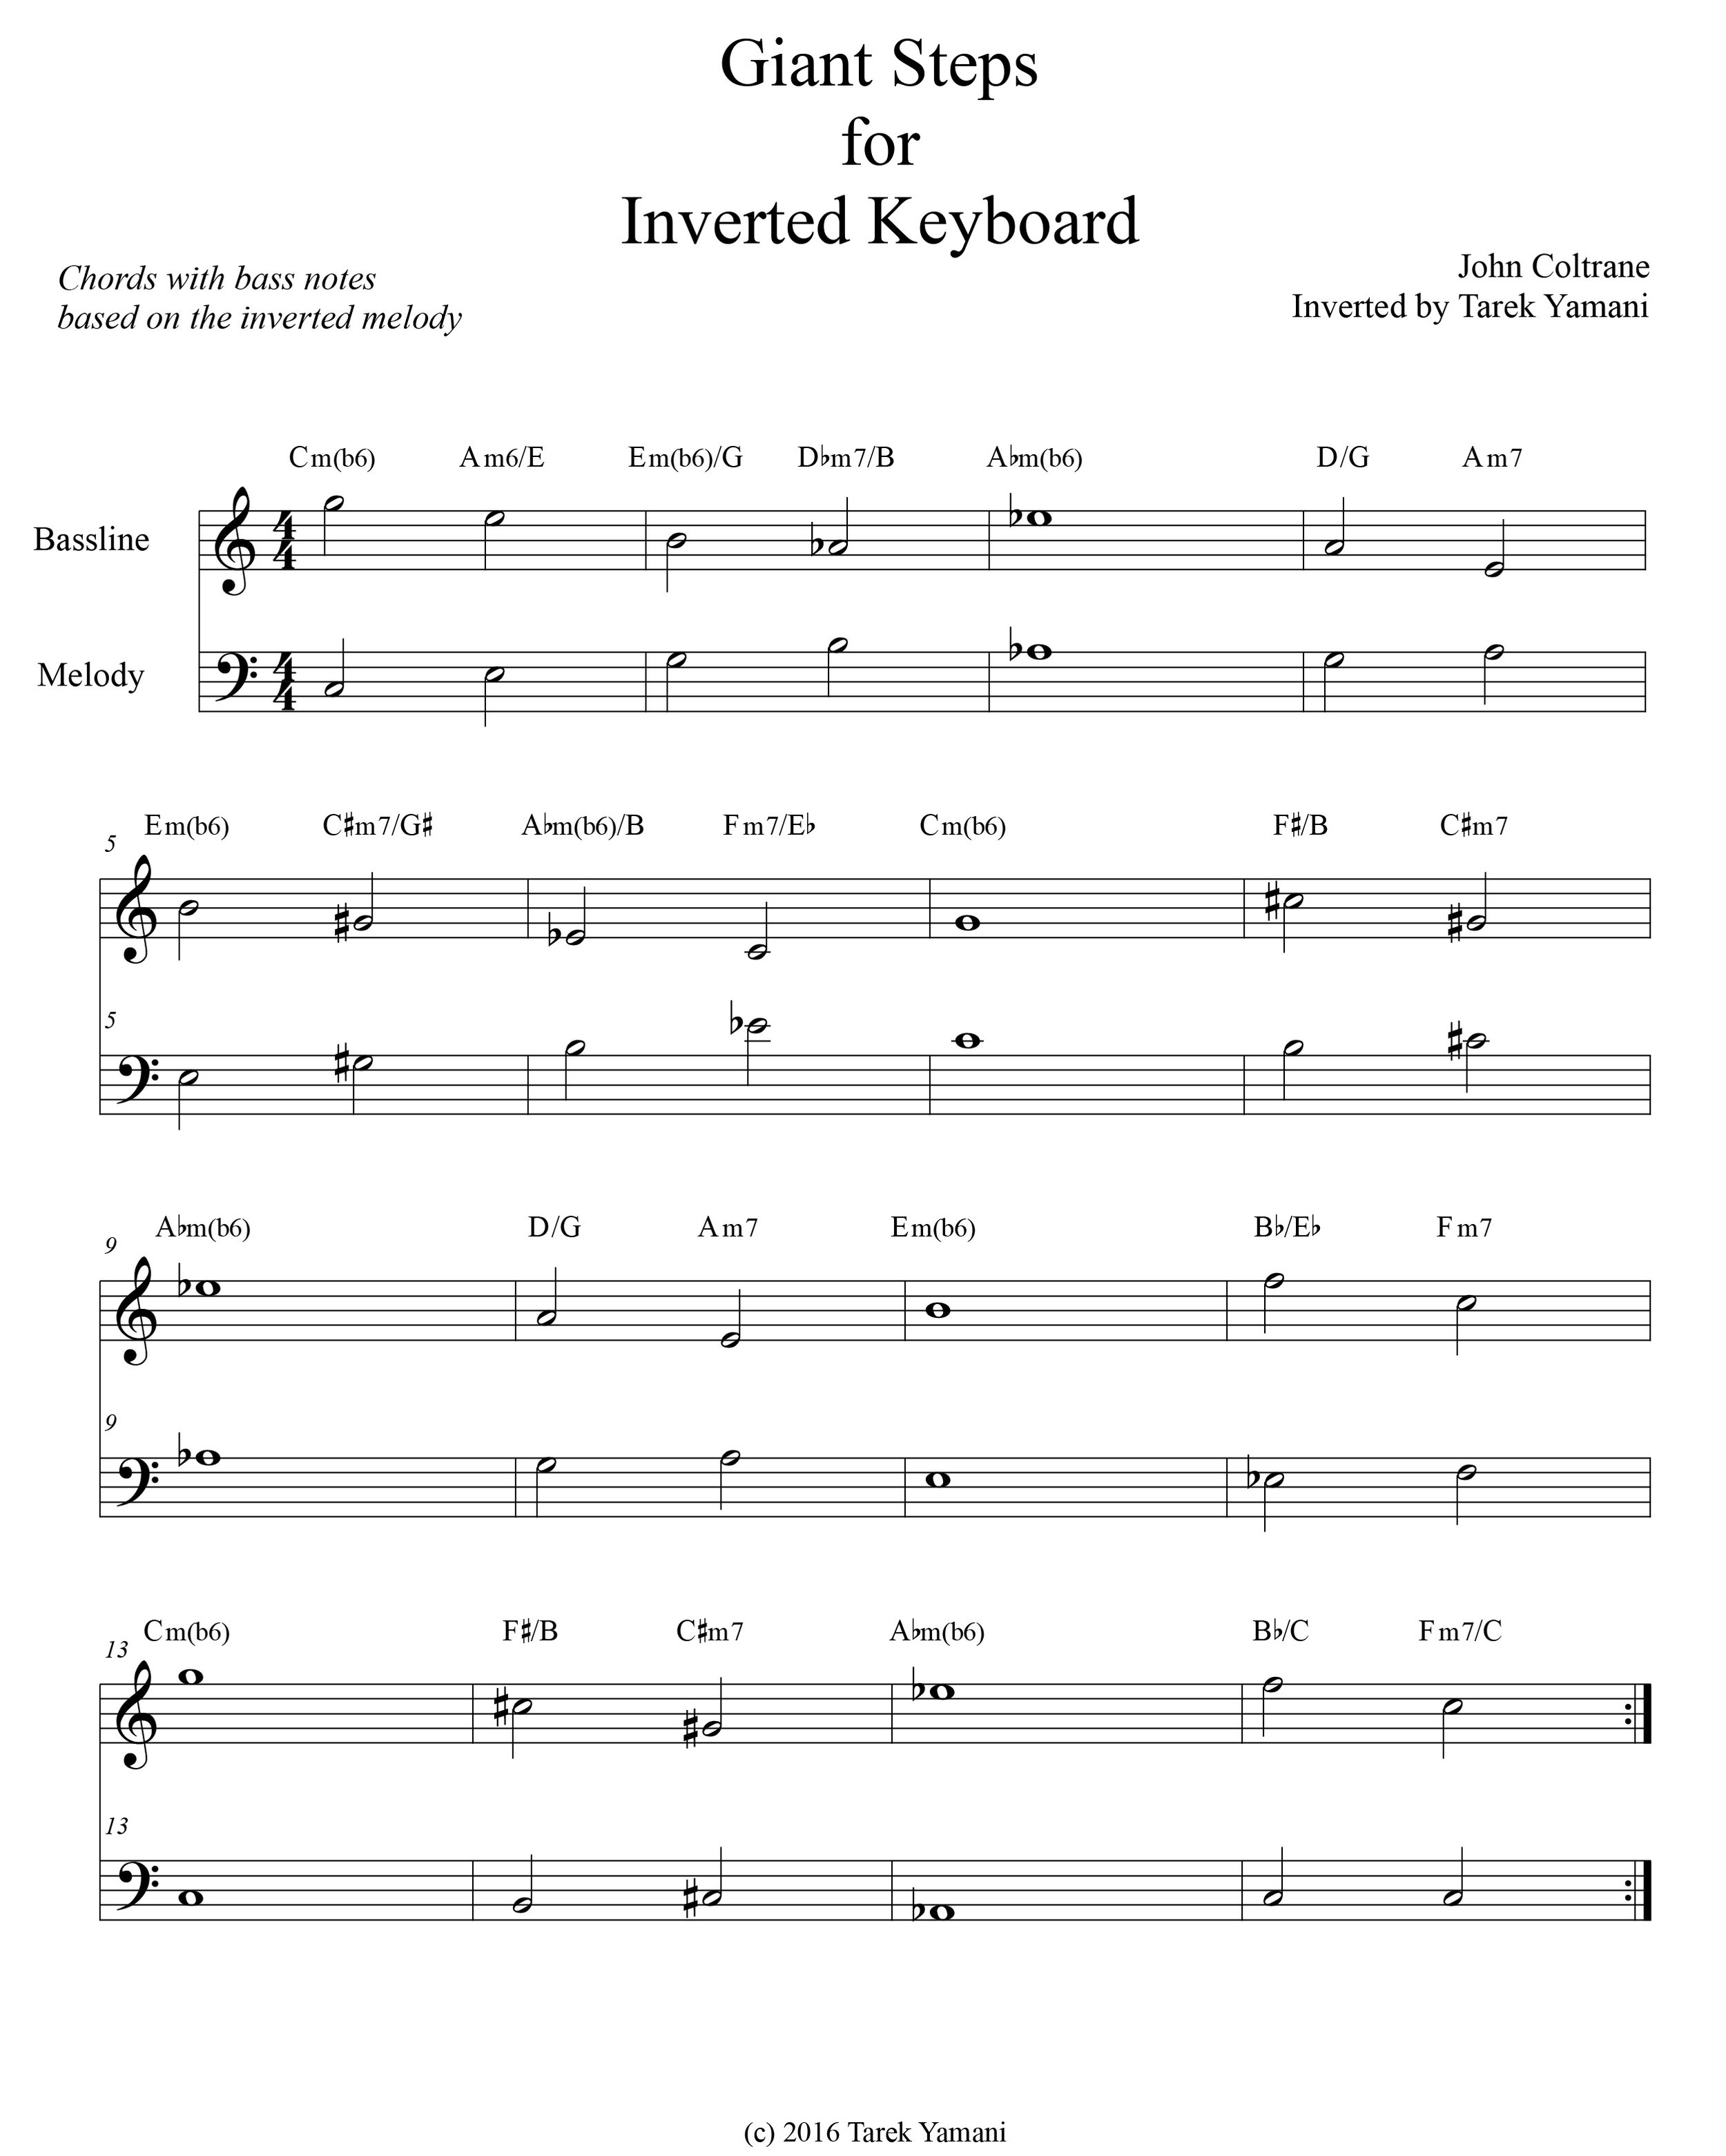 Giant Steps for Inverted Keyboard: A New Harmonic